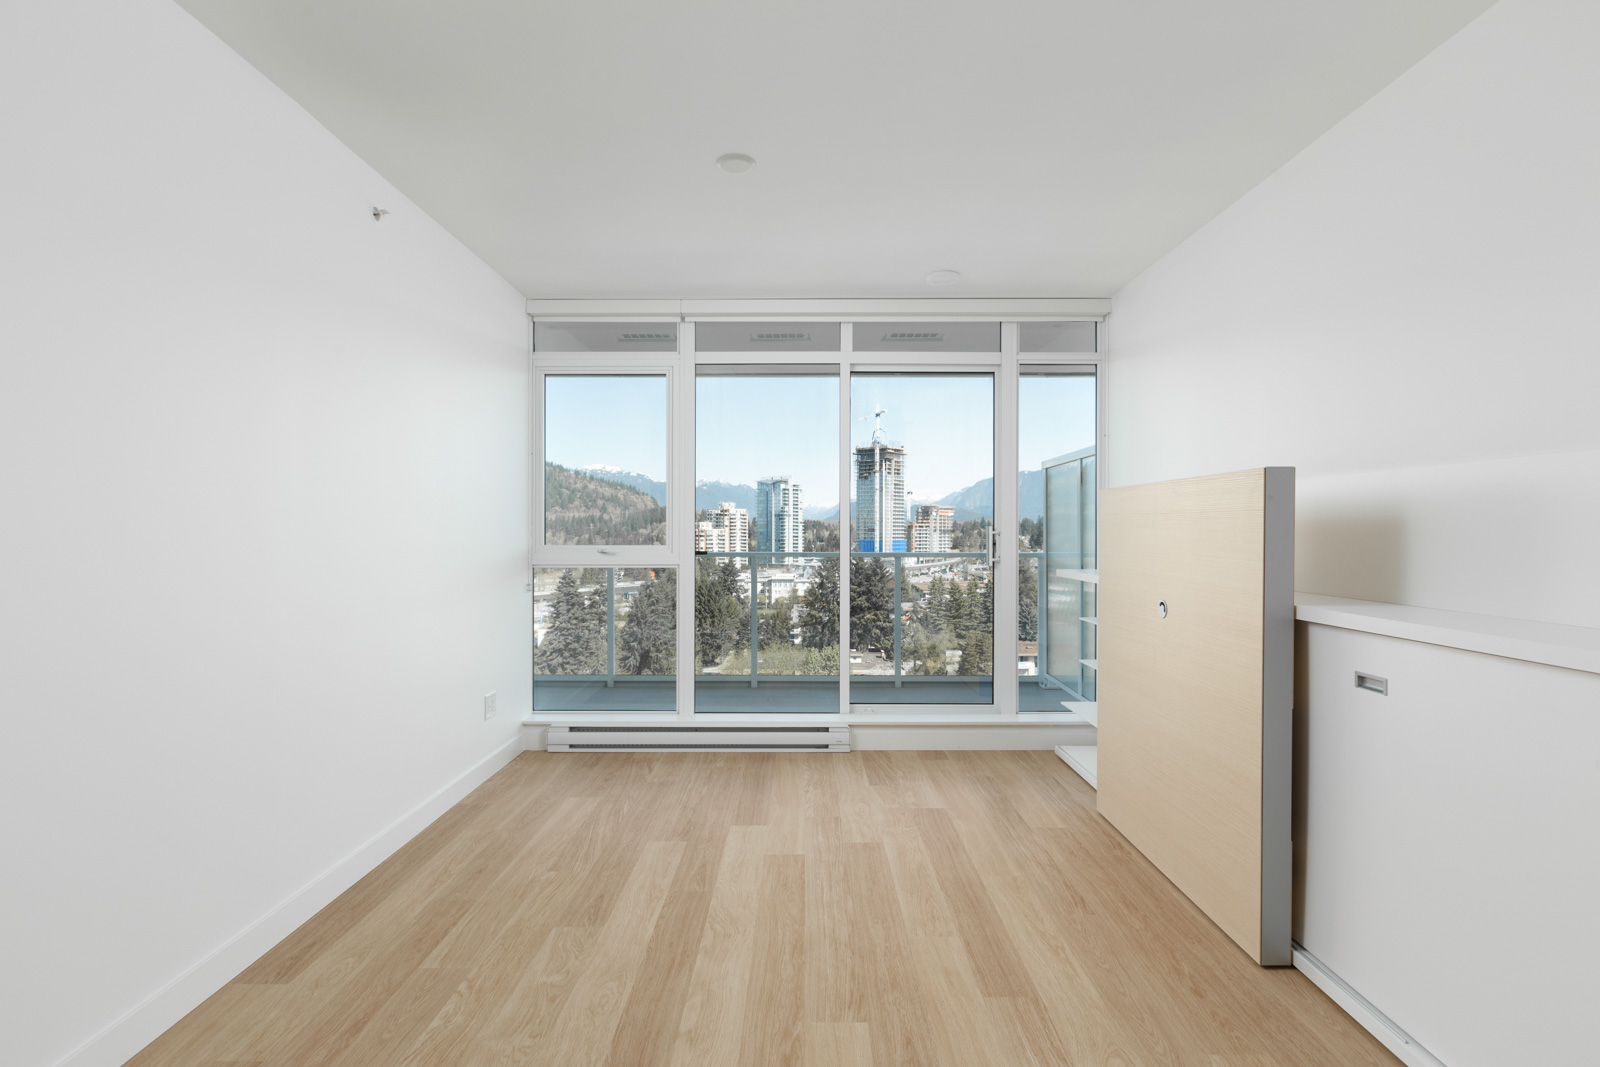 Bright spacious open living room with engineered hardwood flooring with natural lighting from floor-to-ceiling windows in a new condo in Coquitlam managed by Birds Nest Properties in Vancouver